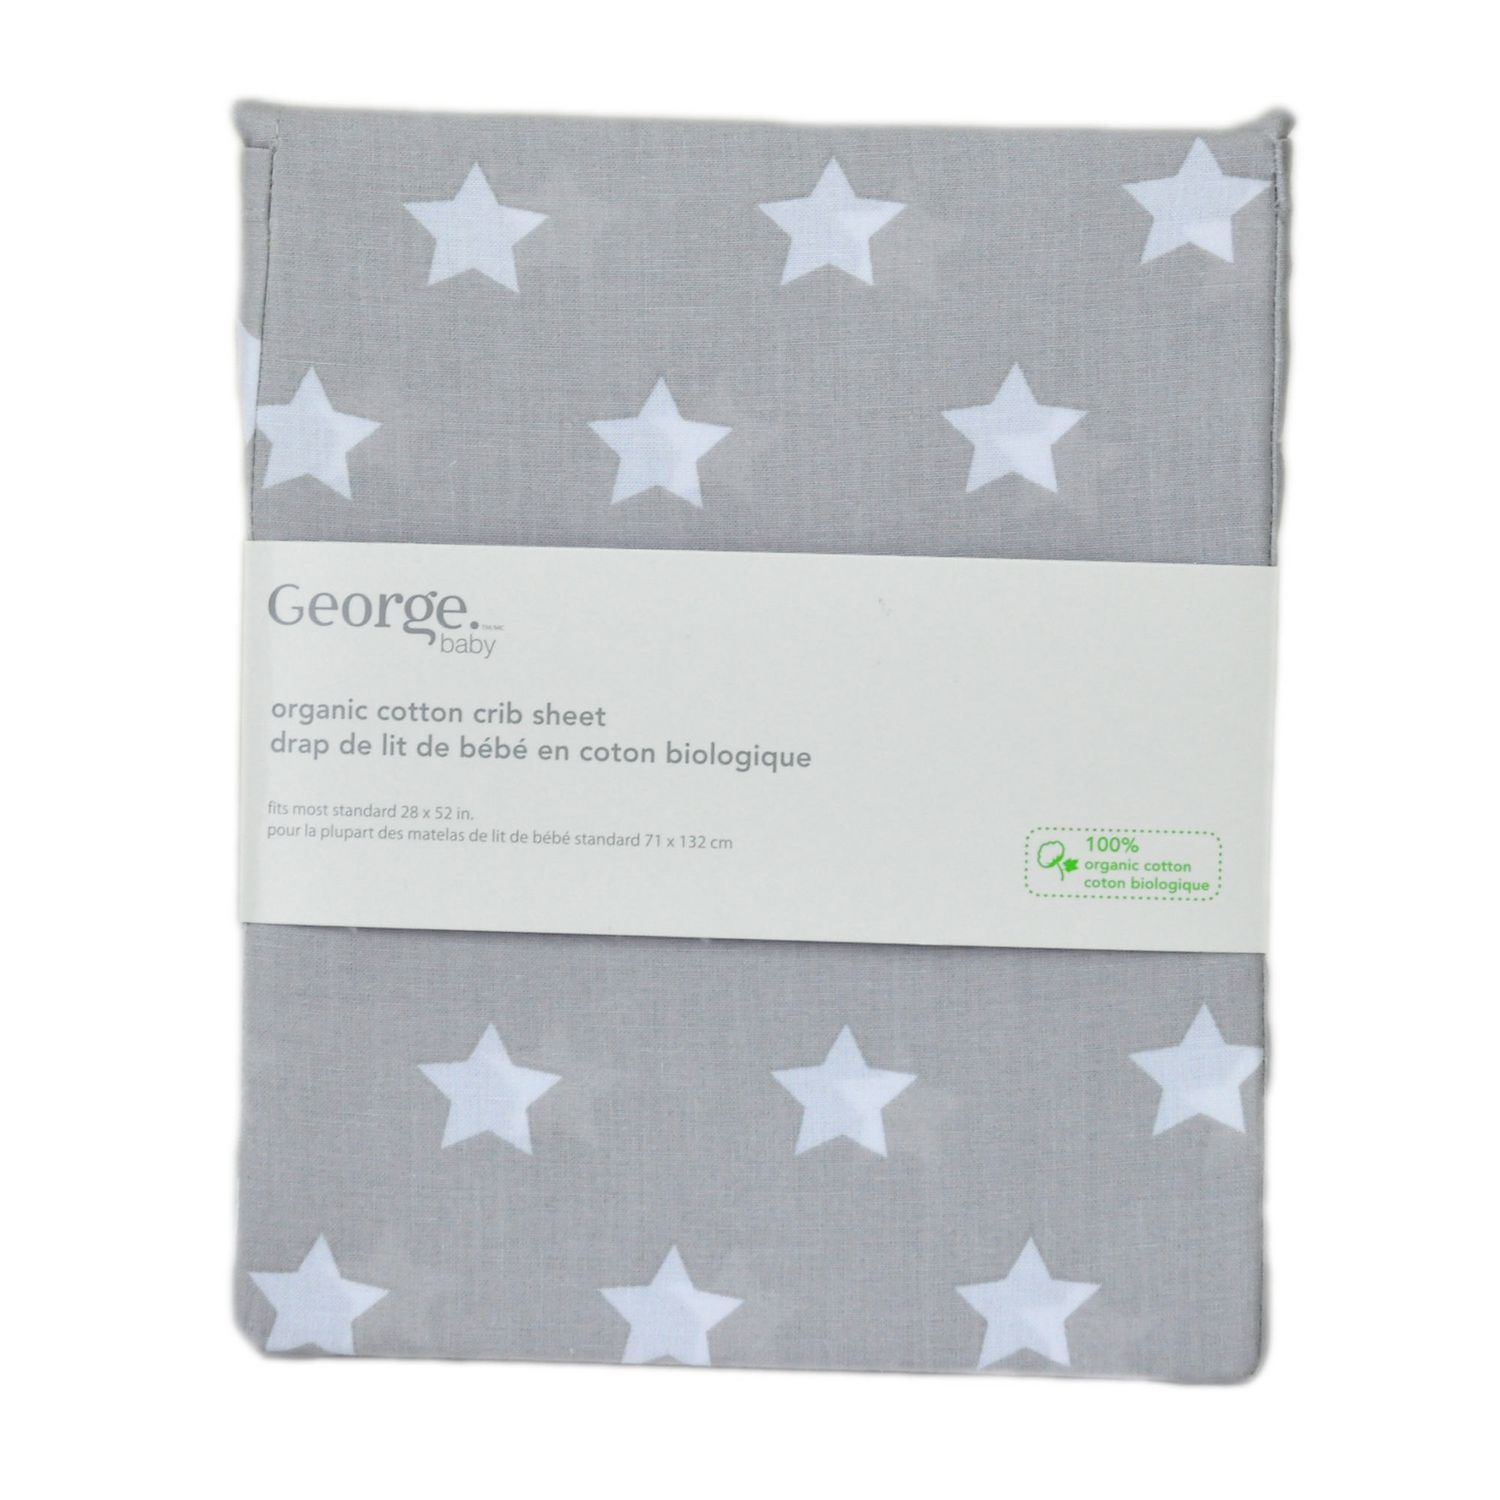 Baby cribs london ontario - George Baby Organic Cotton Crib Sheet